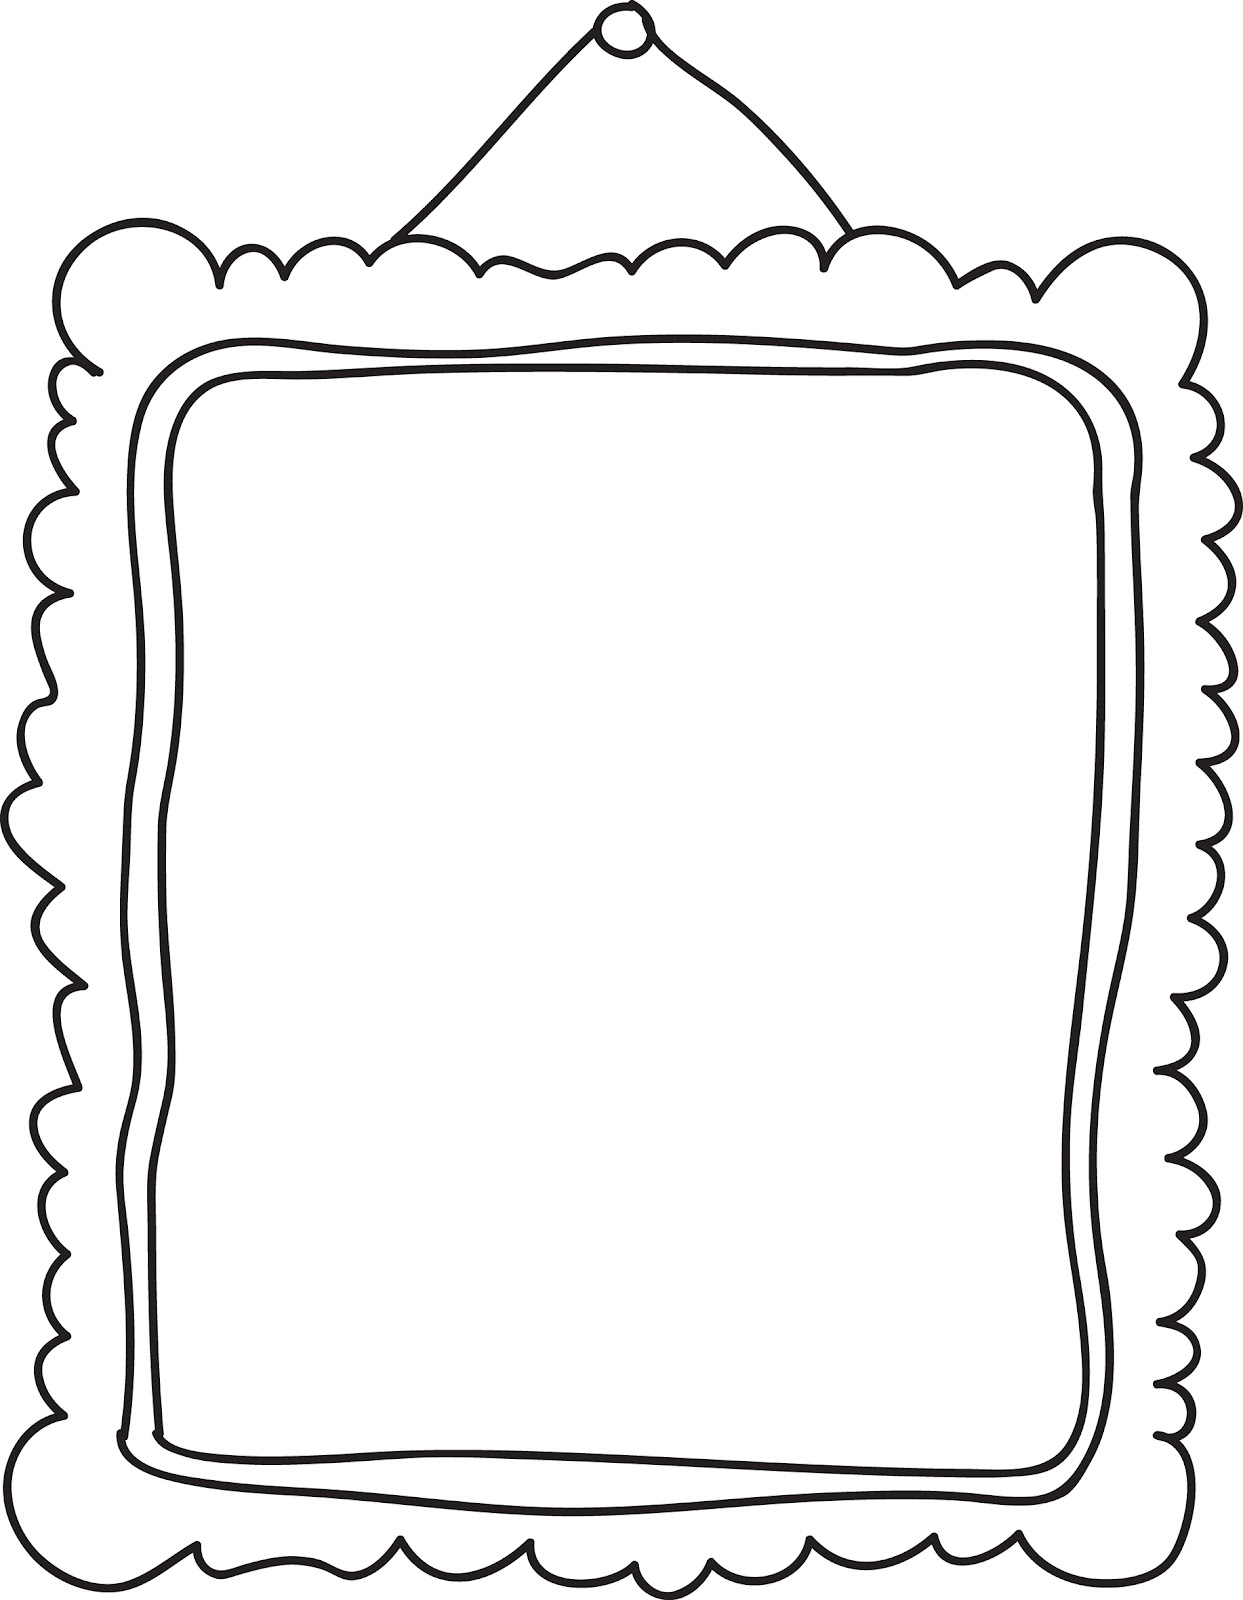 png free download Free frames cliparts download. Art frame clipart